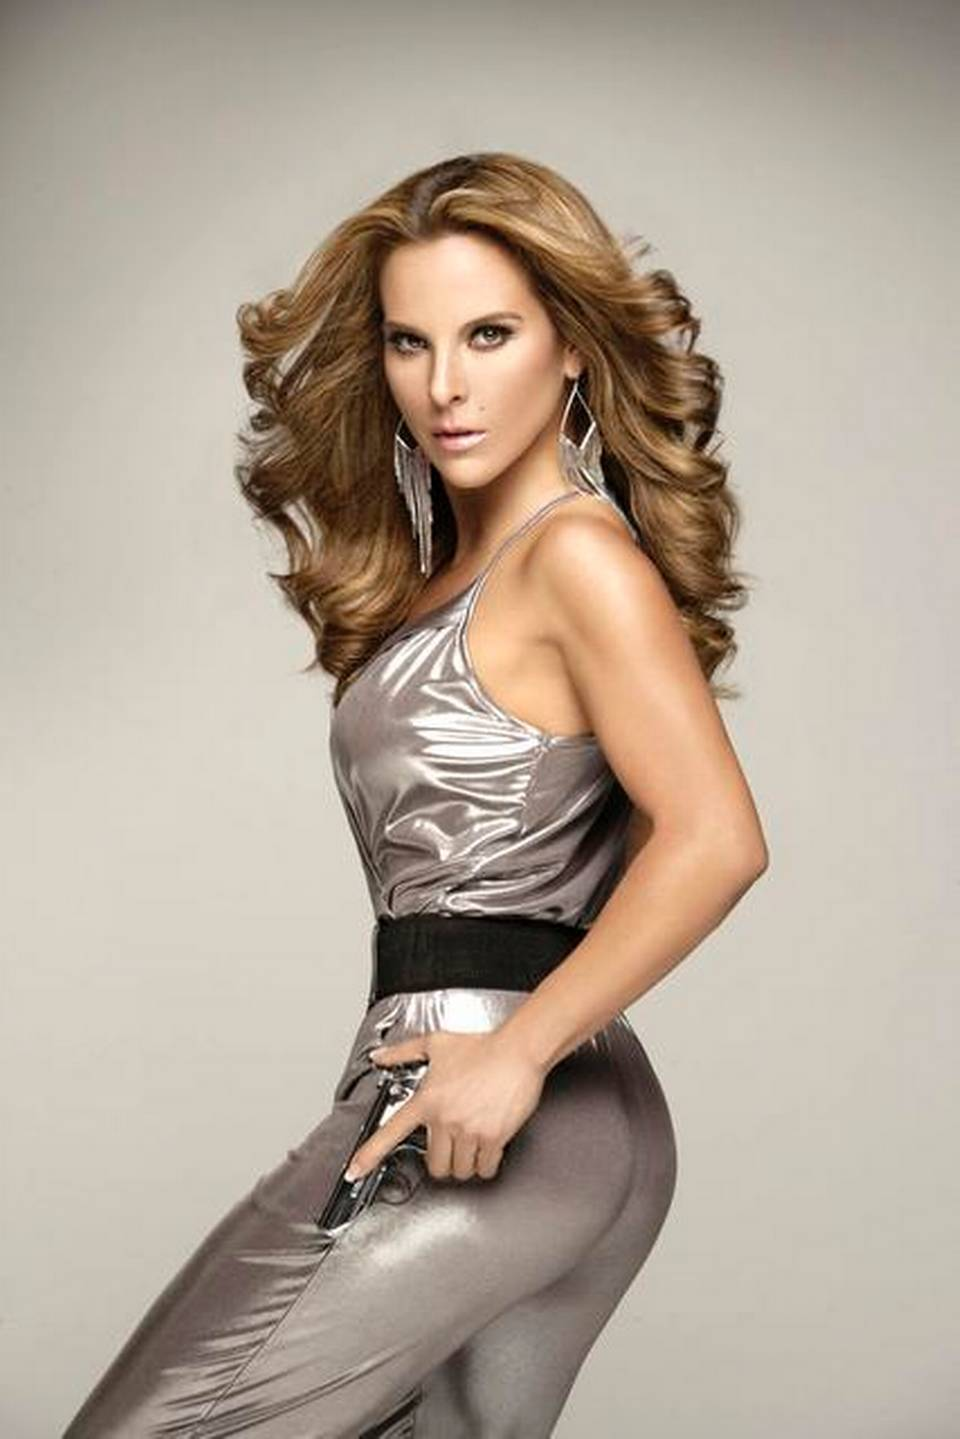 kate del castillo fitness